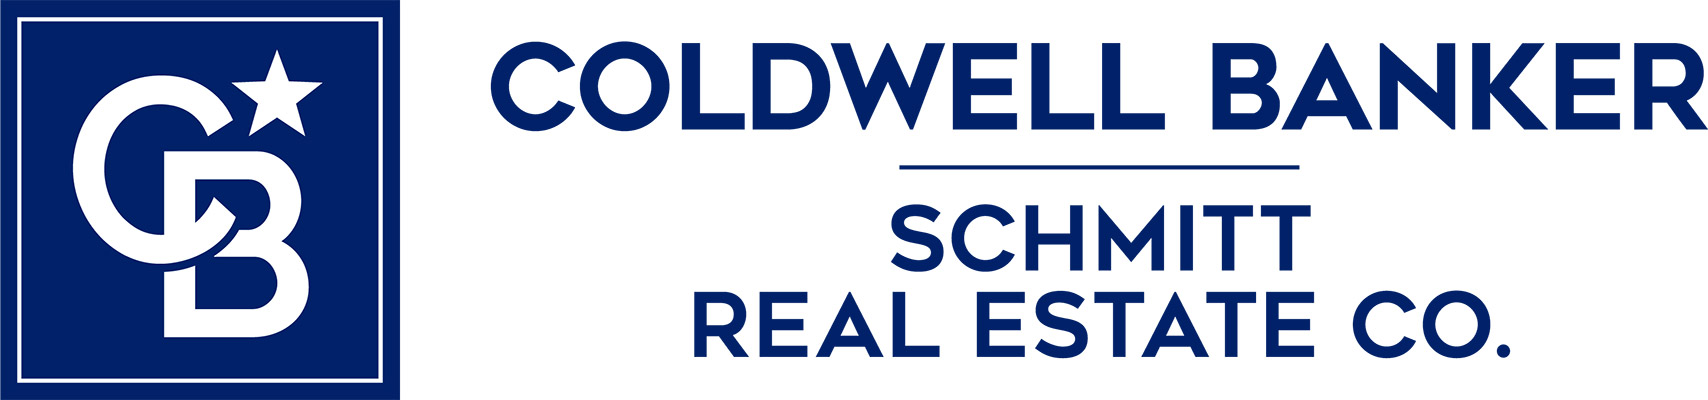 Sam Williams - Coldwell Banker Logo